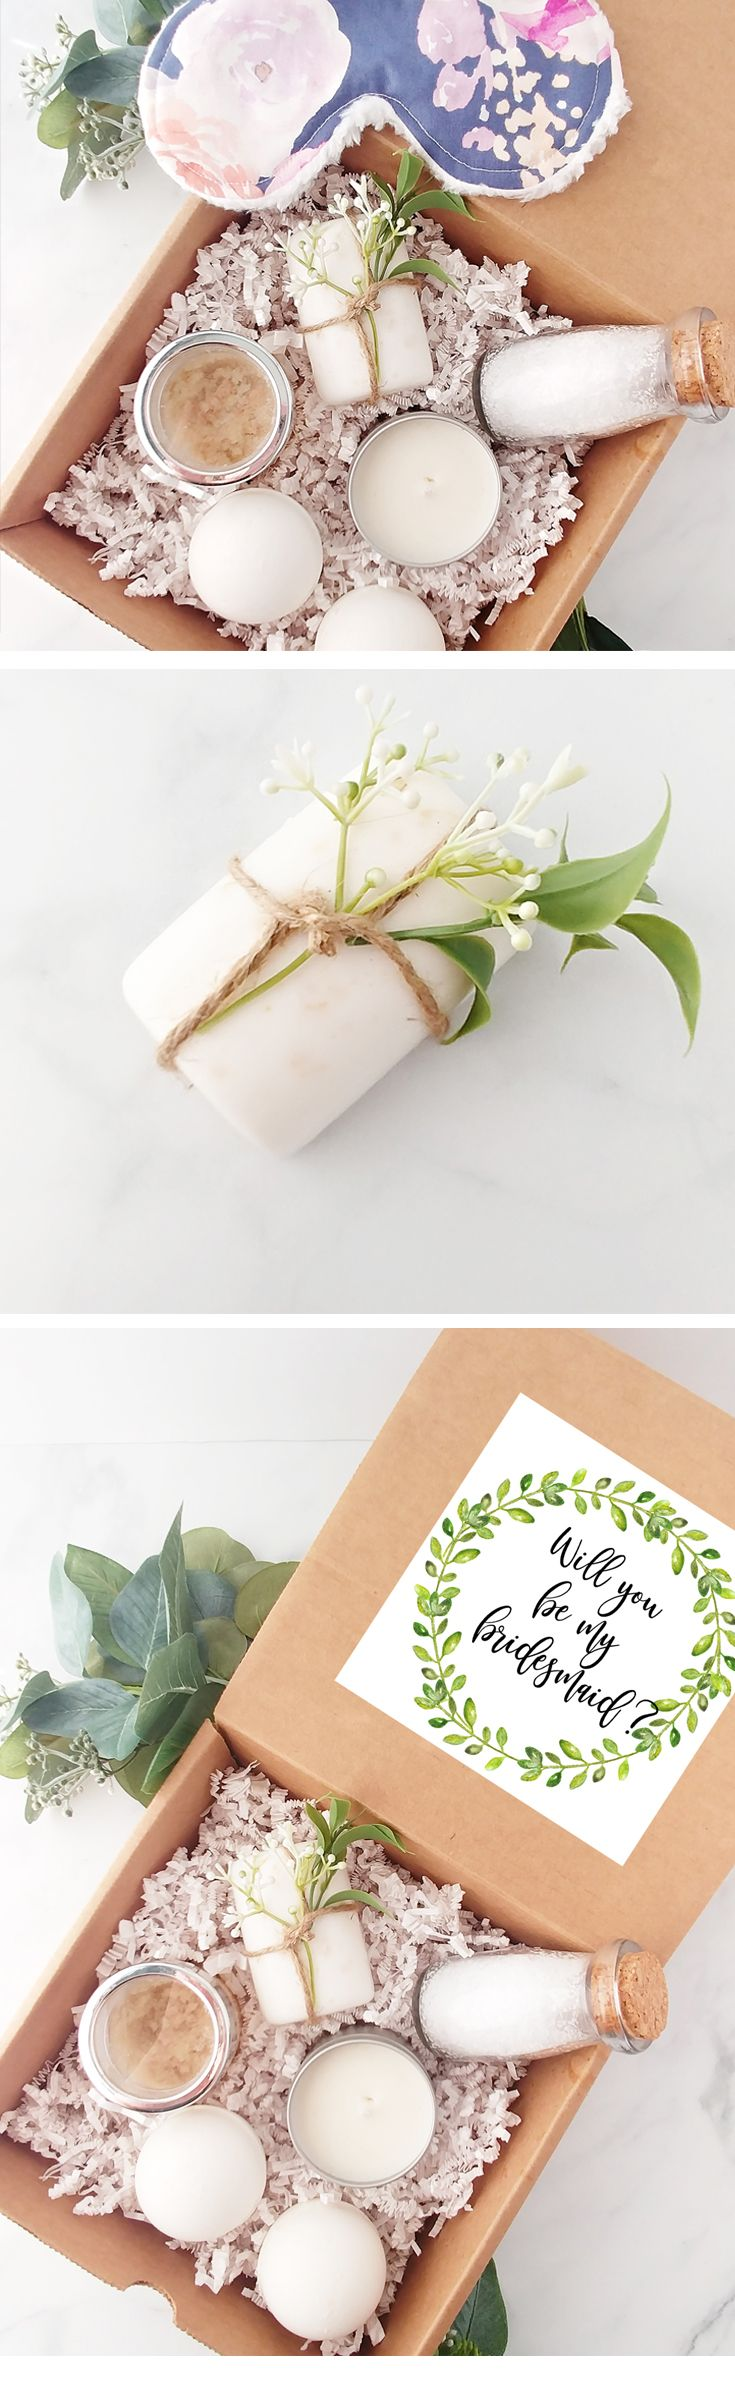 102 best Baby Shower images on Pinterest | Baby shower parties, Baby ...